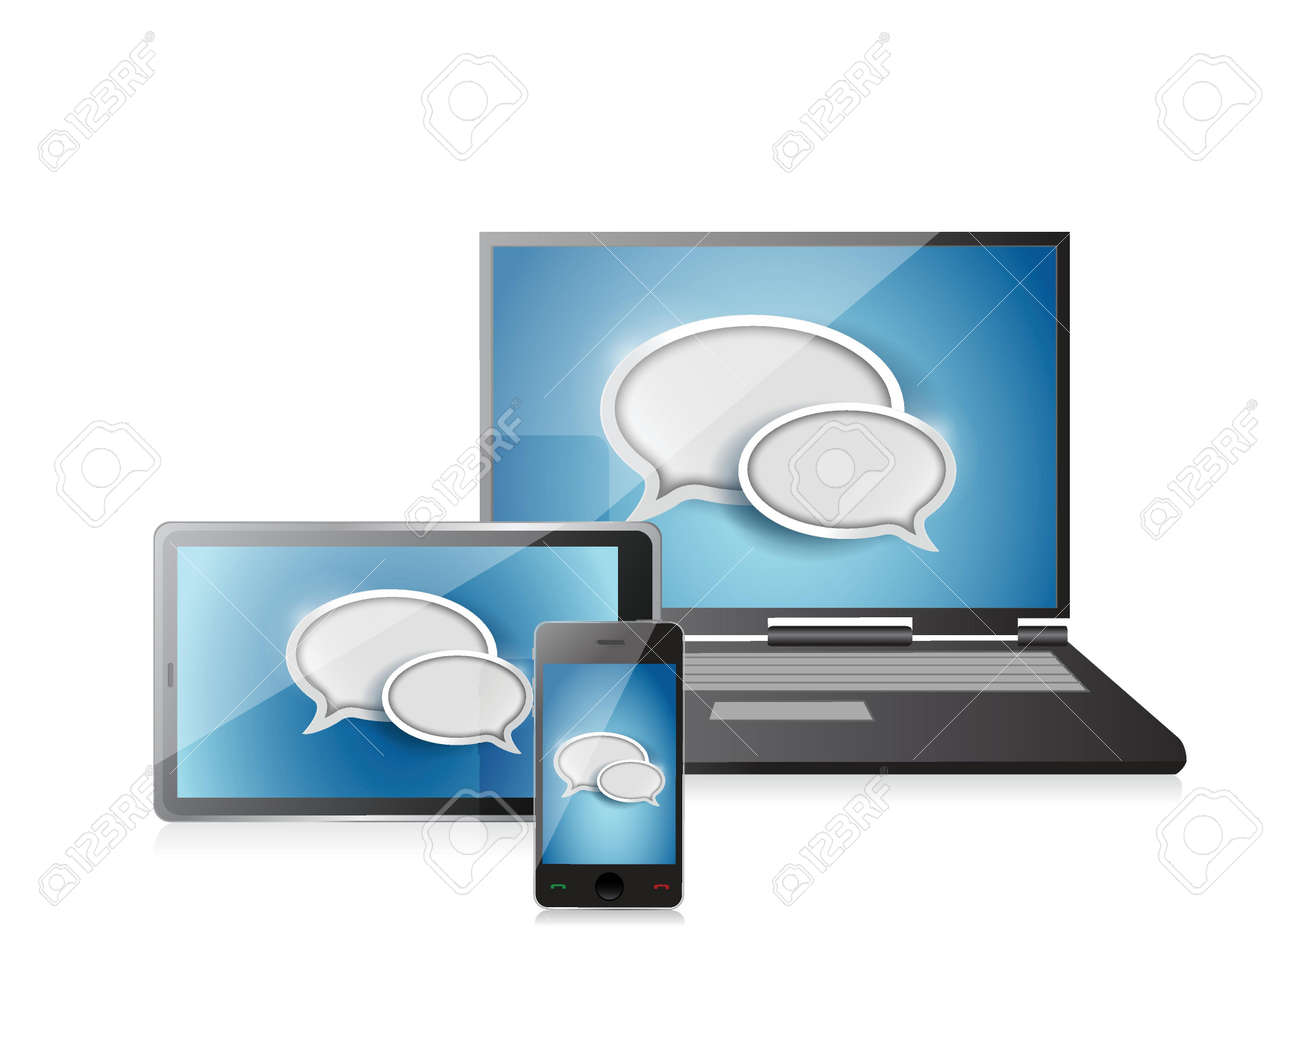 Chat Concept illustration design over a white background Stock Vector - 20530702